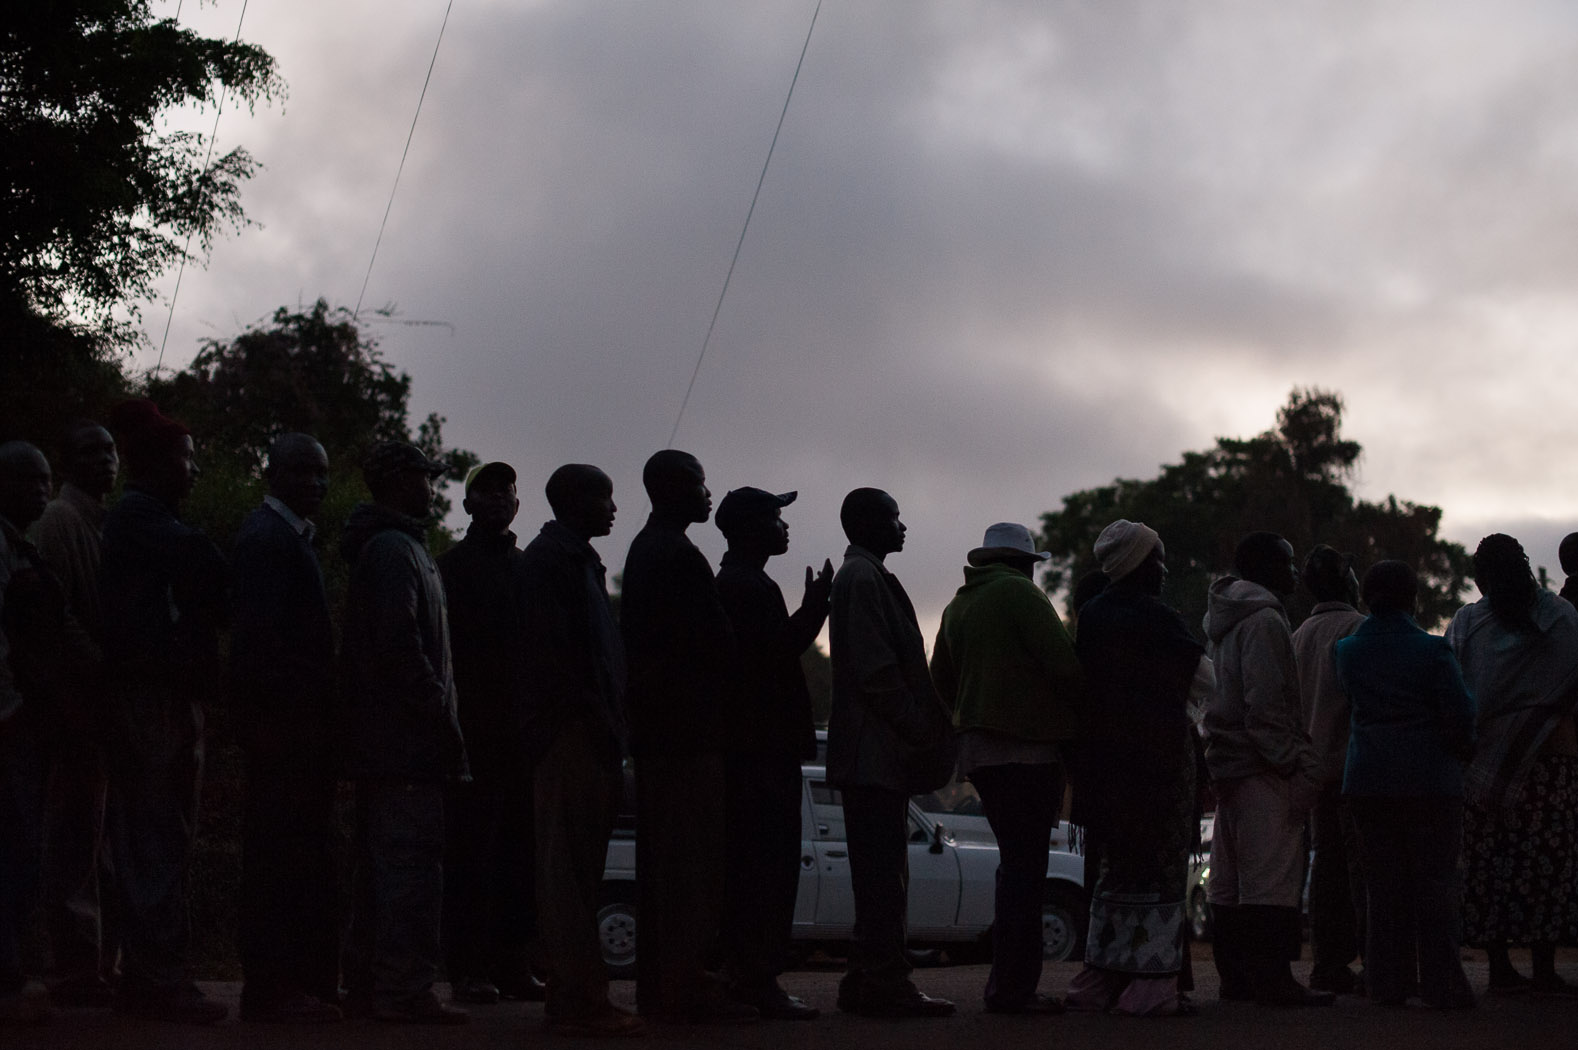 Come voting day, Kenyans turned out before dawn in large numbers to cast their ballot, many waiting in-line for hours. The turn-out was over 85%.